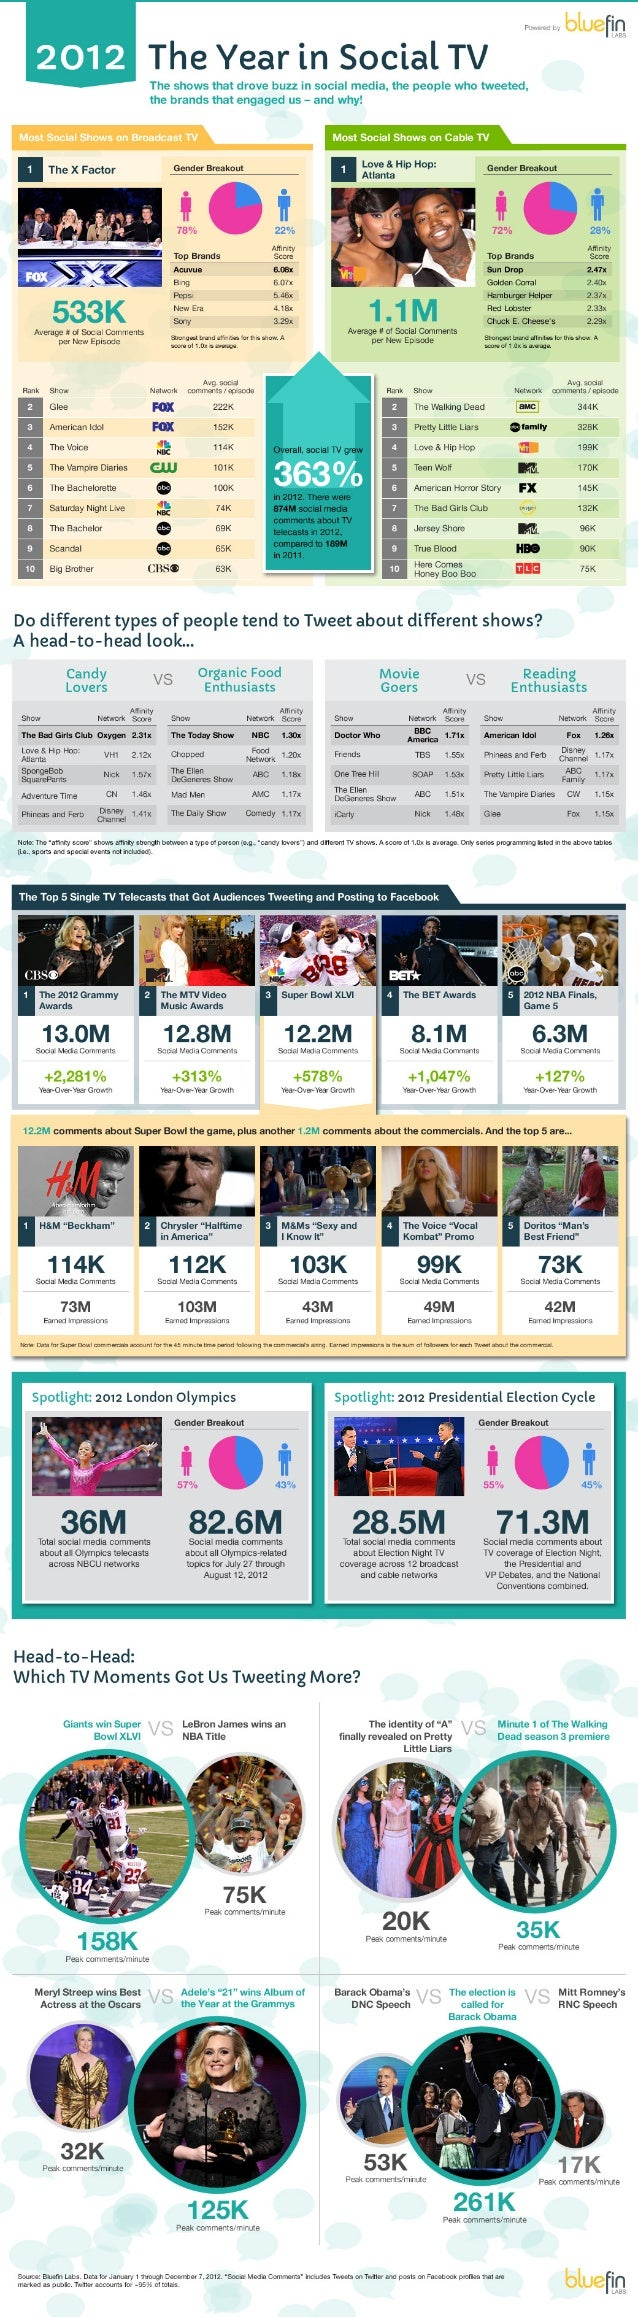 2012: The Year in Social TV, via Bluefin Labs